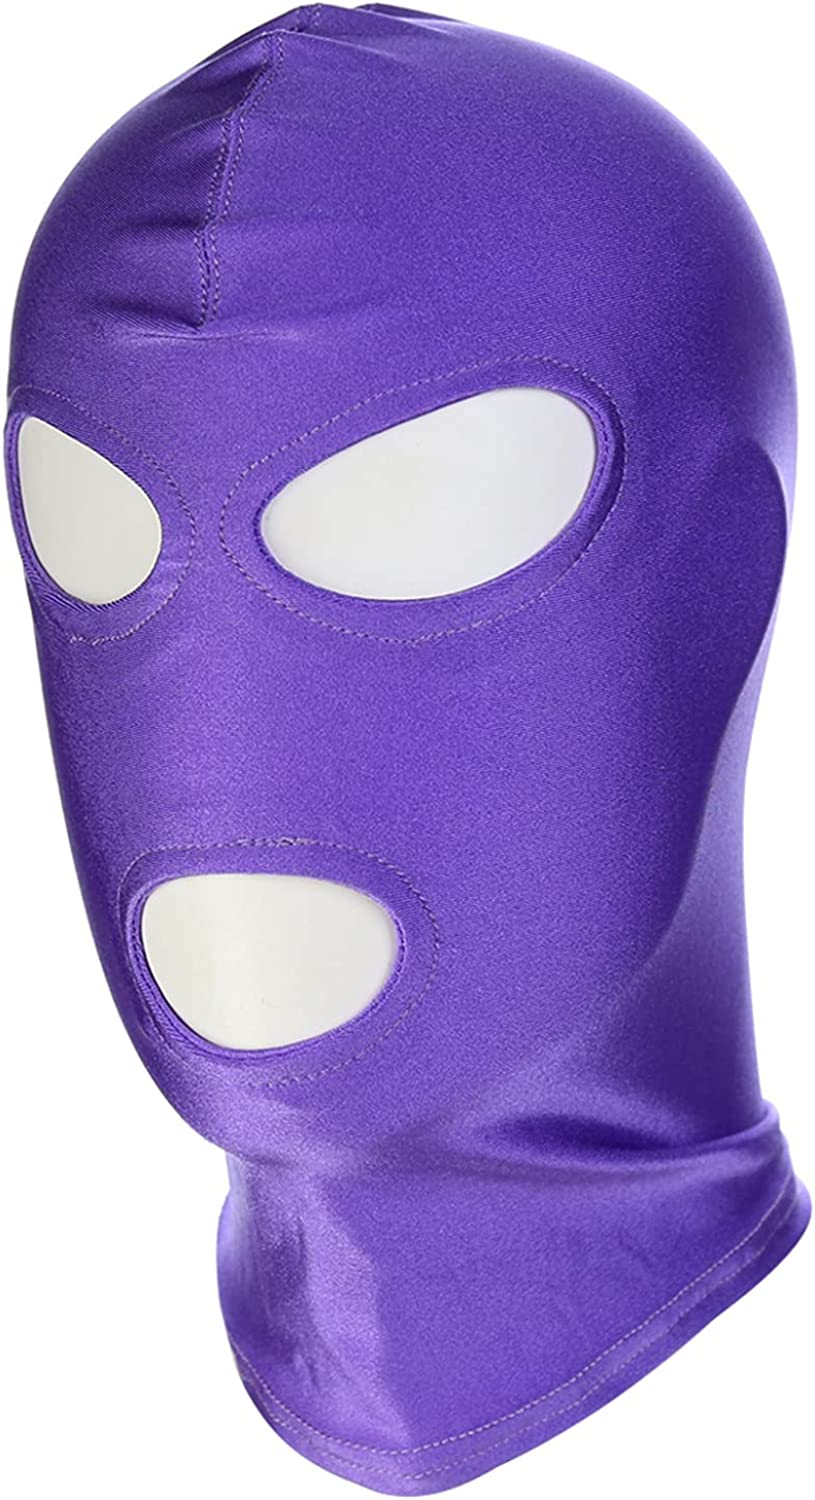 QinCiao Spandex price Cheap SALE Start Head Mask Hood Open Playing Role Game Mouth